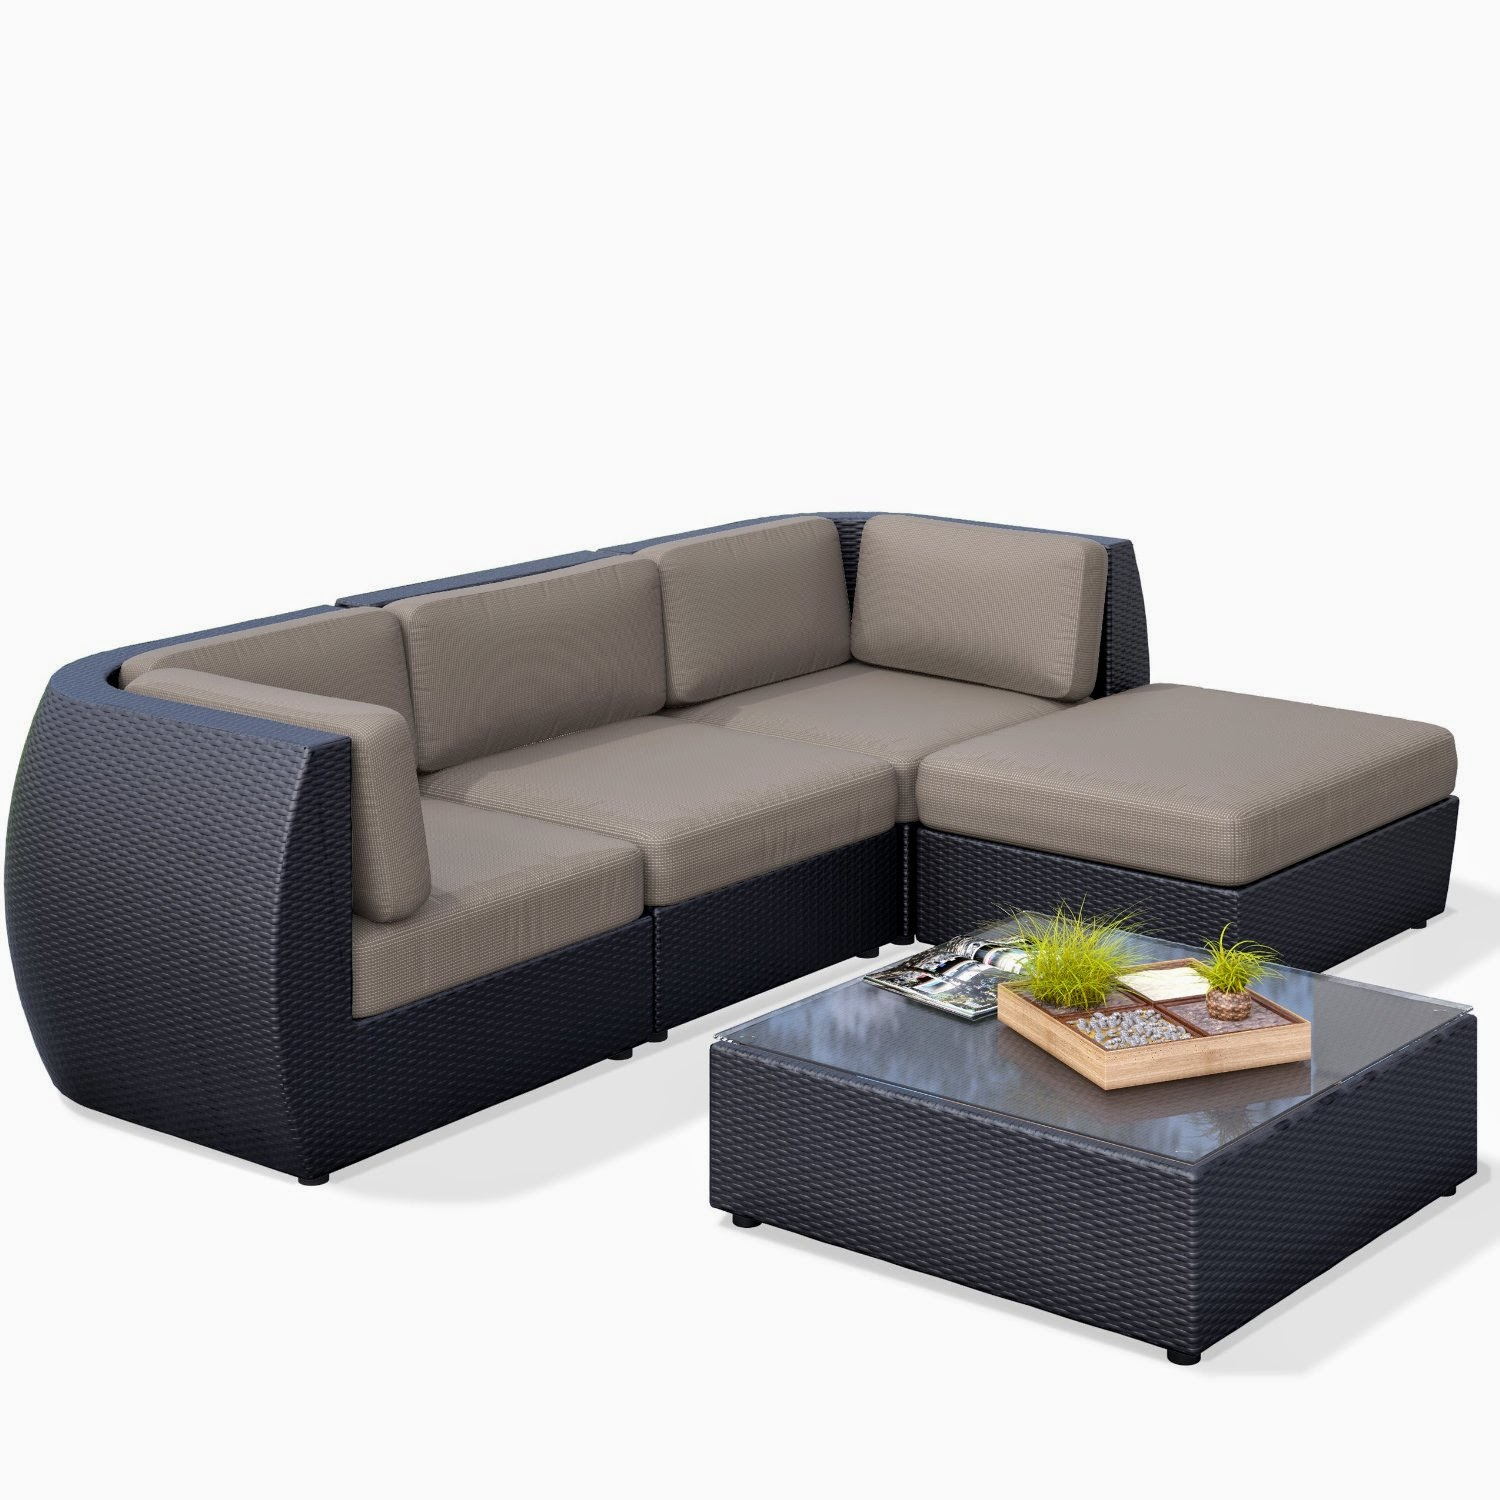 curved sofa: curved outdoor sofa